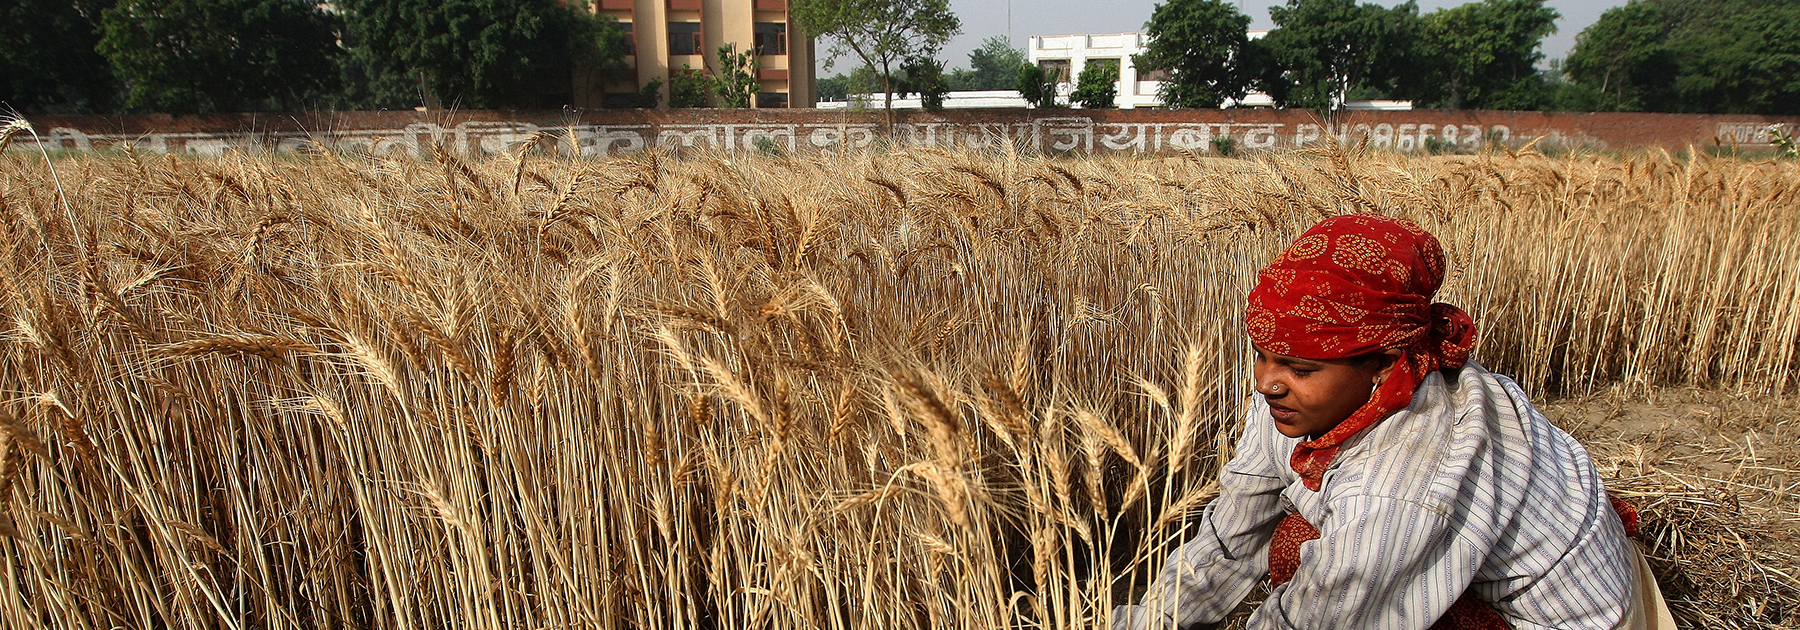 A farmer harvests a crop of wheat in a field in Ghaziabad. (PRAKASH SINGH/AFP/Getty Images)